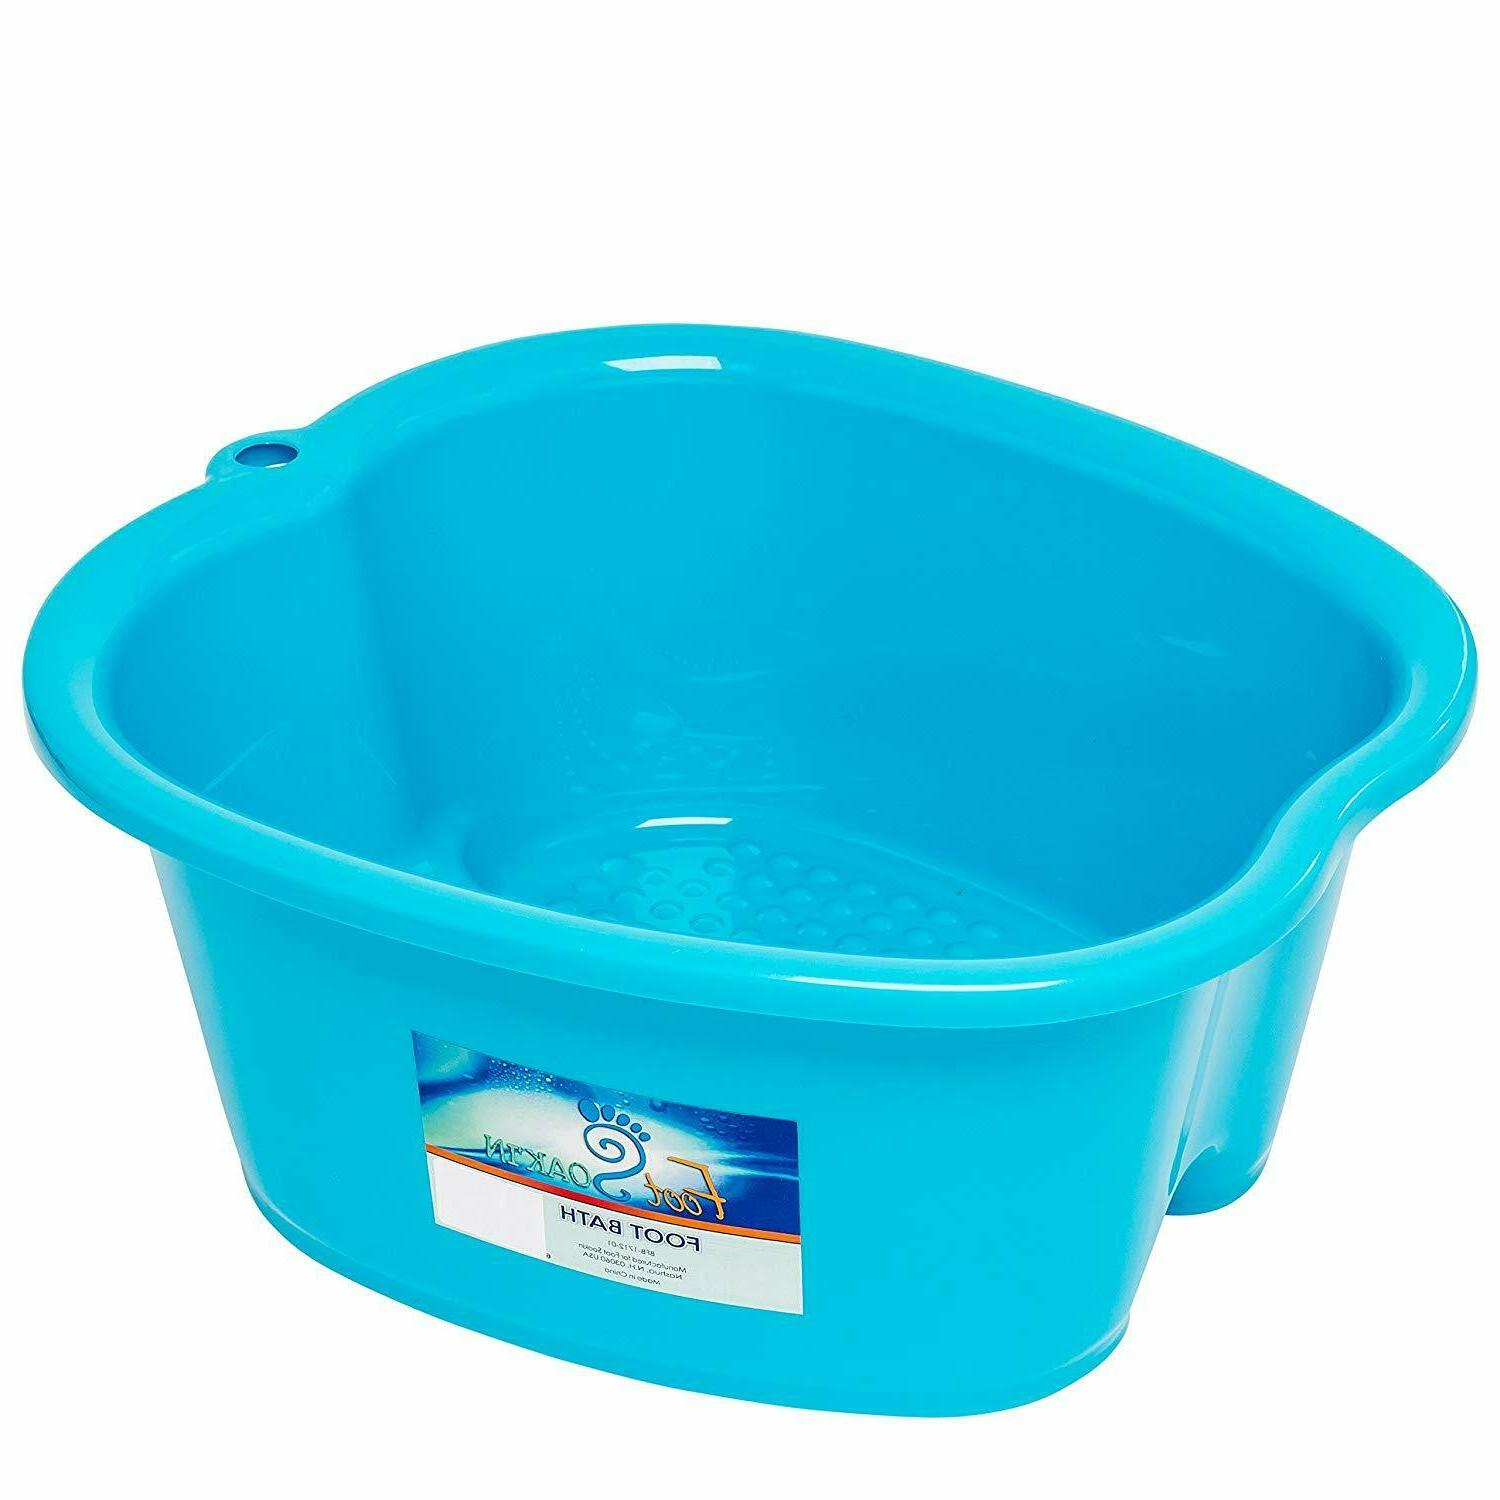 Large Foot Tub Thick Sturdy Basin for Pedicure Detox Massage